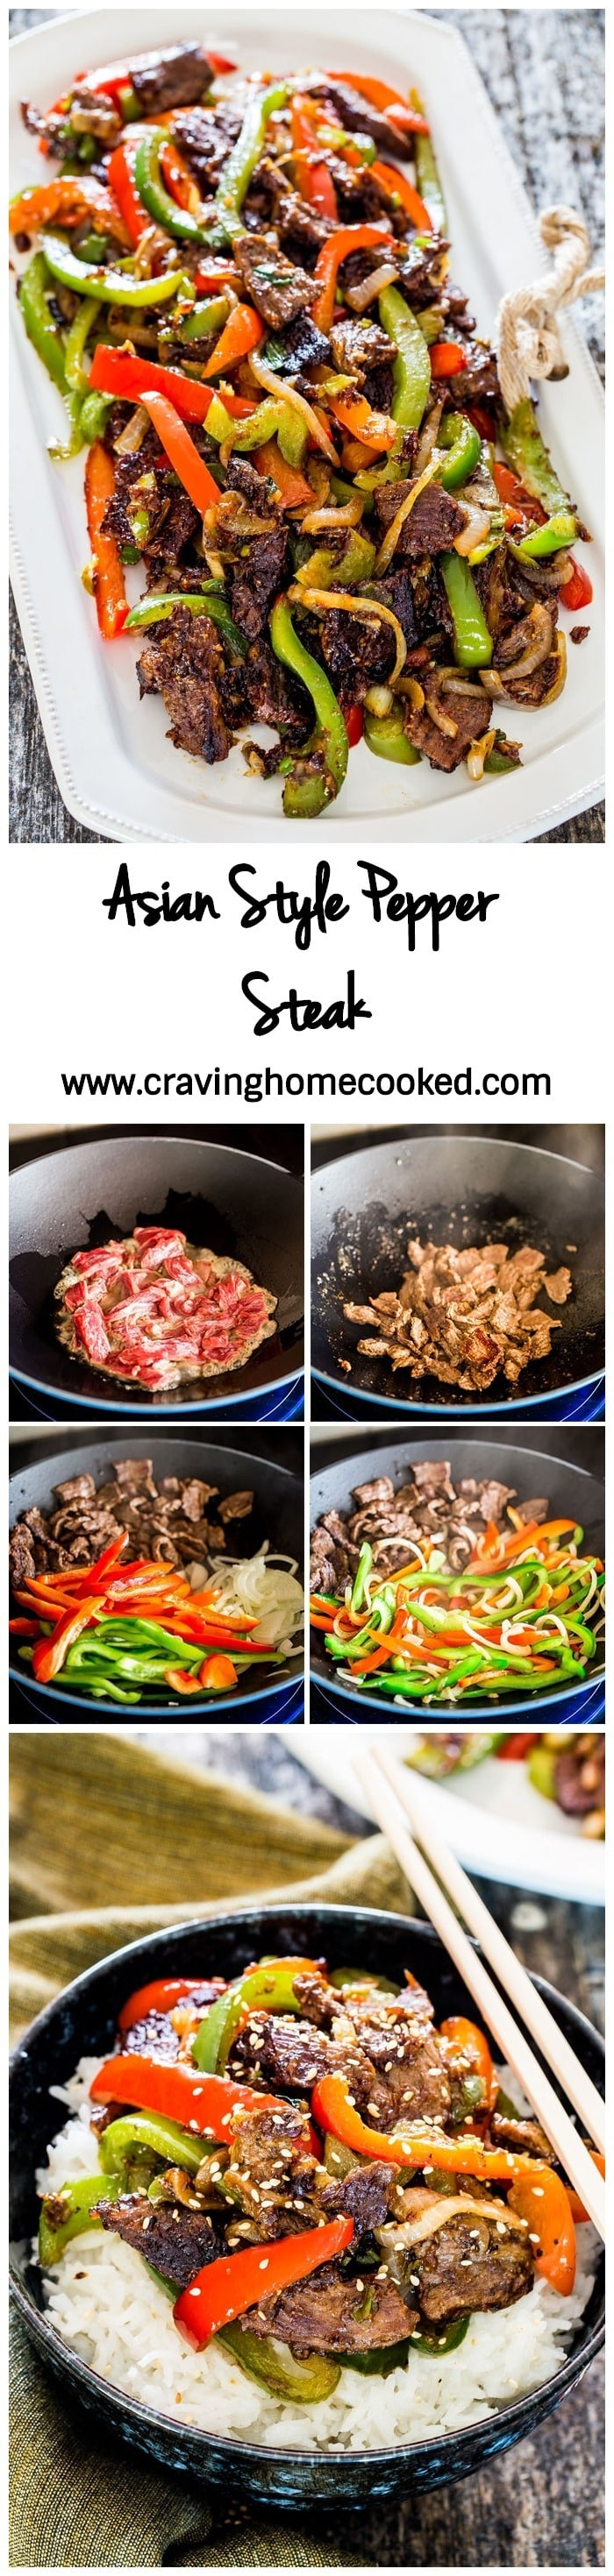 Tender Strips of beef stir fried with peppers and onions with a delicious Asian style sauce. A super simple pepper steak dinner that can be on your dinner table in 25 minutes tops, using simple and fresh ingredients. #peppersteak